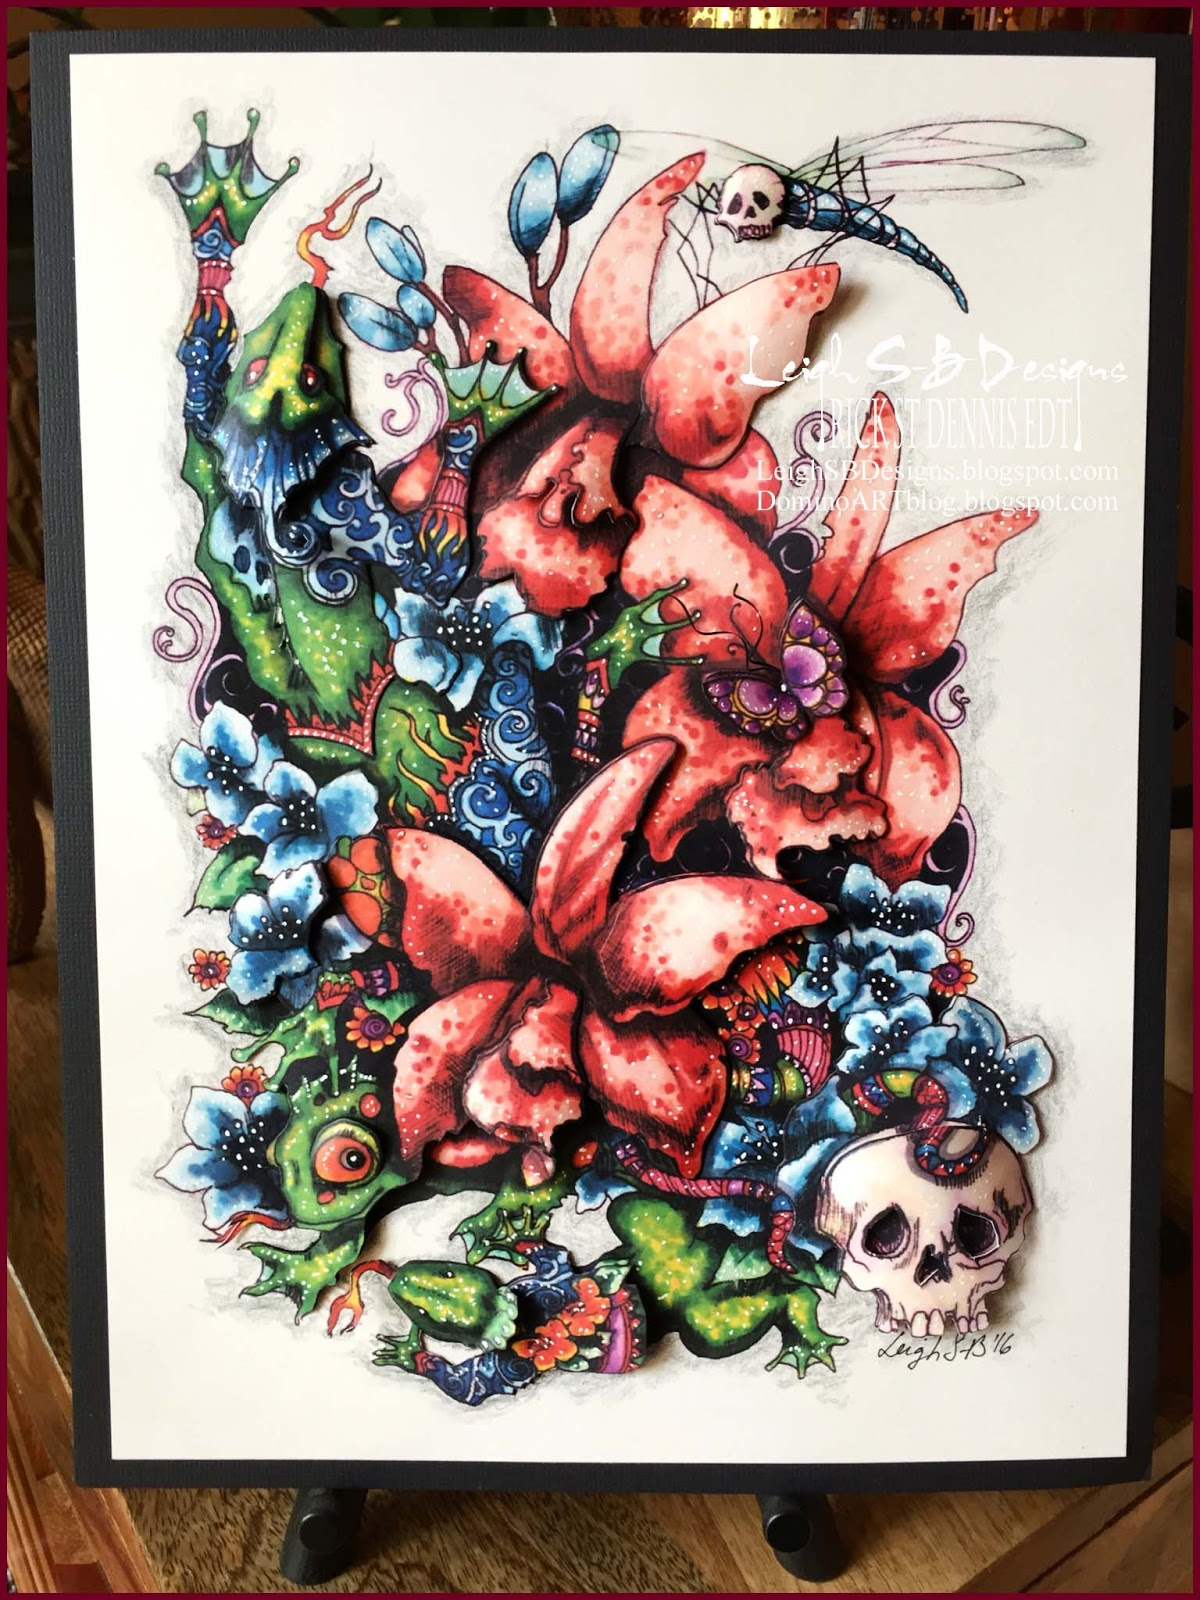 leighsbdesigns day of the dead 3d art rick st dennis edt